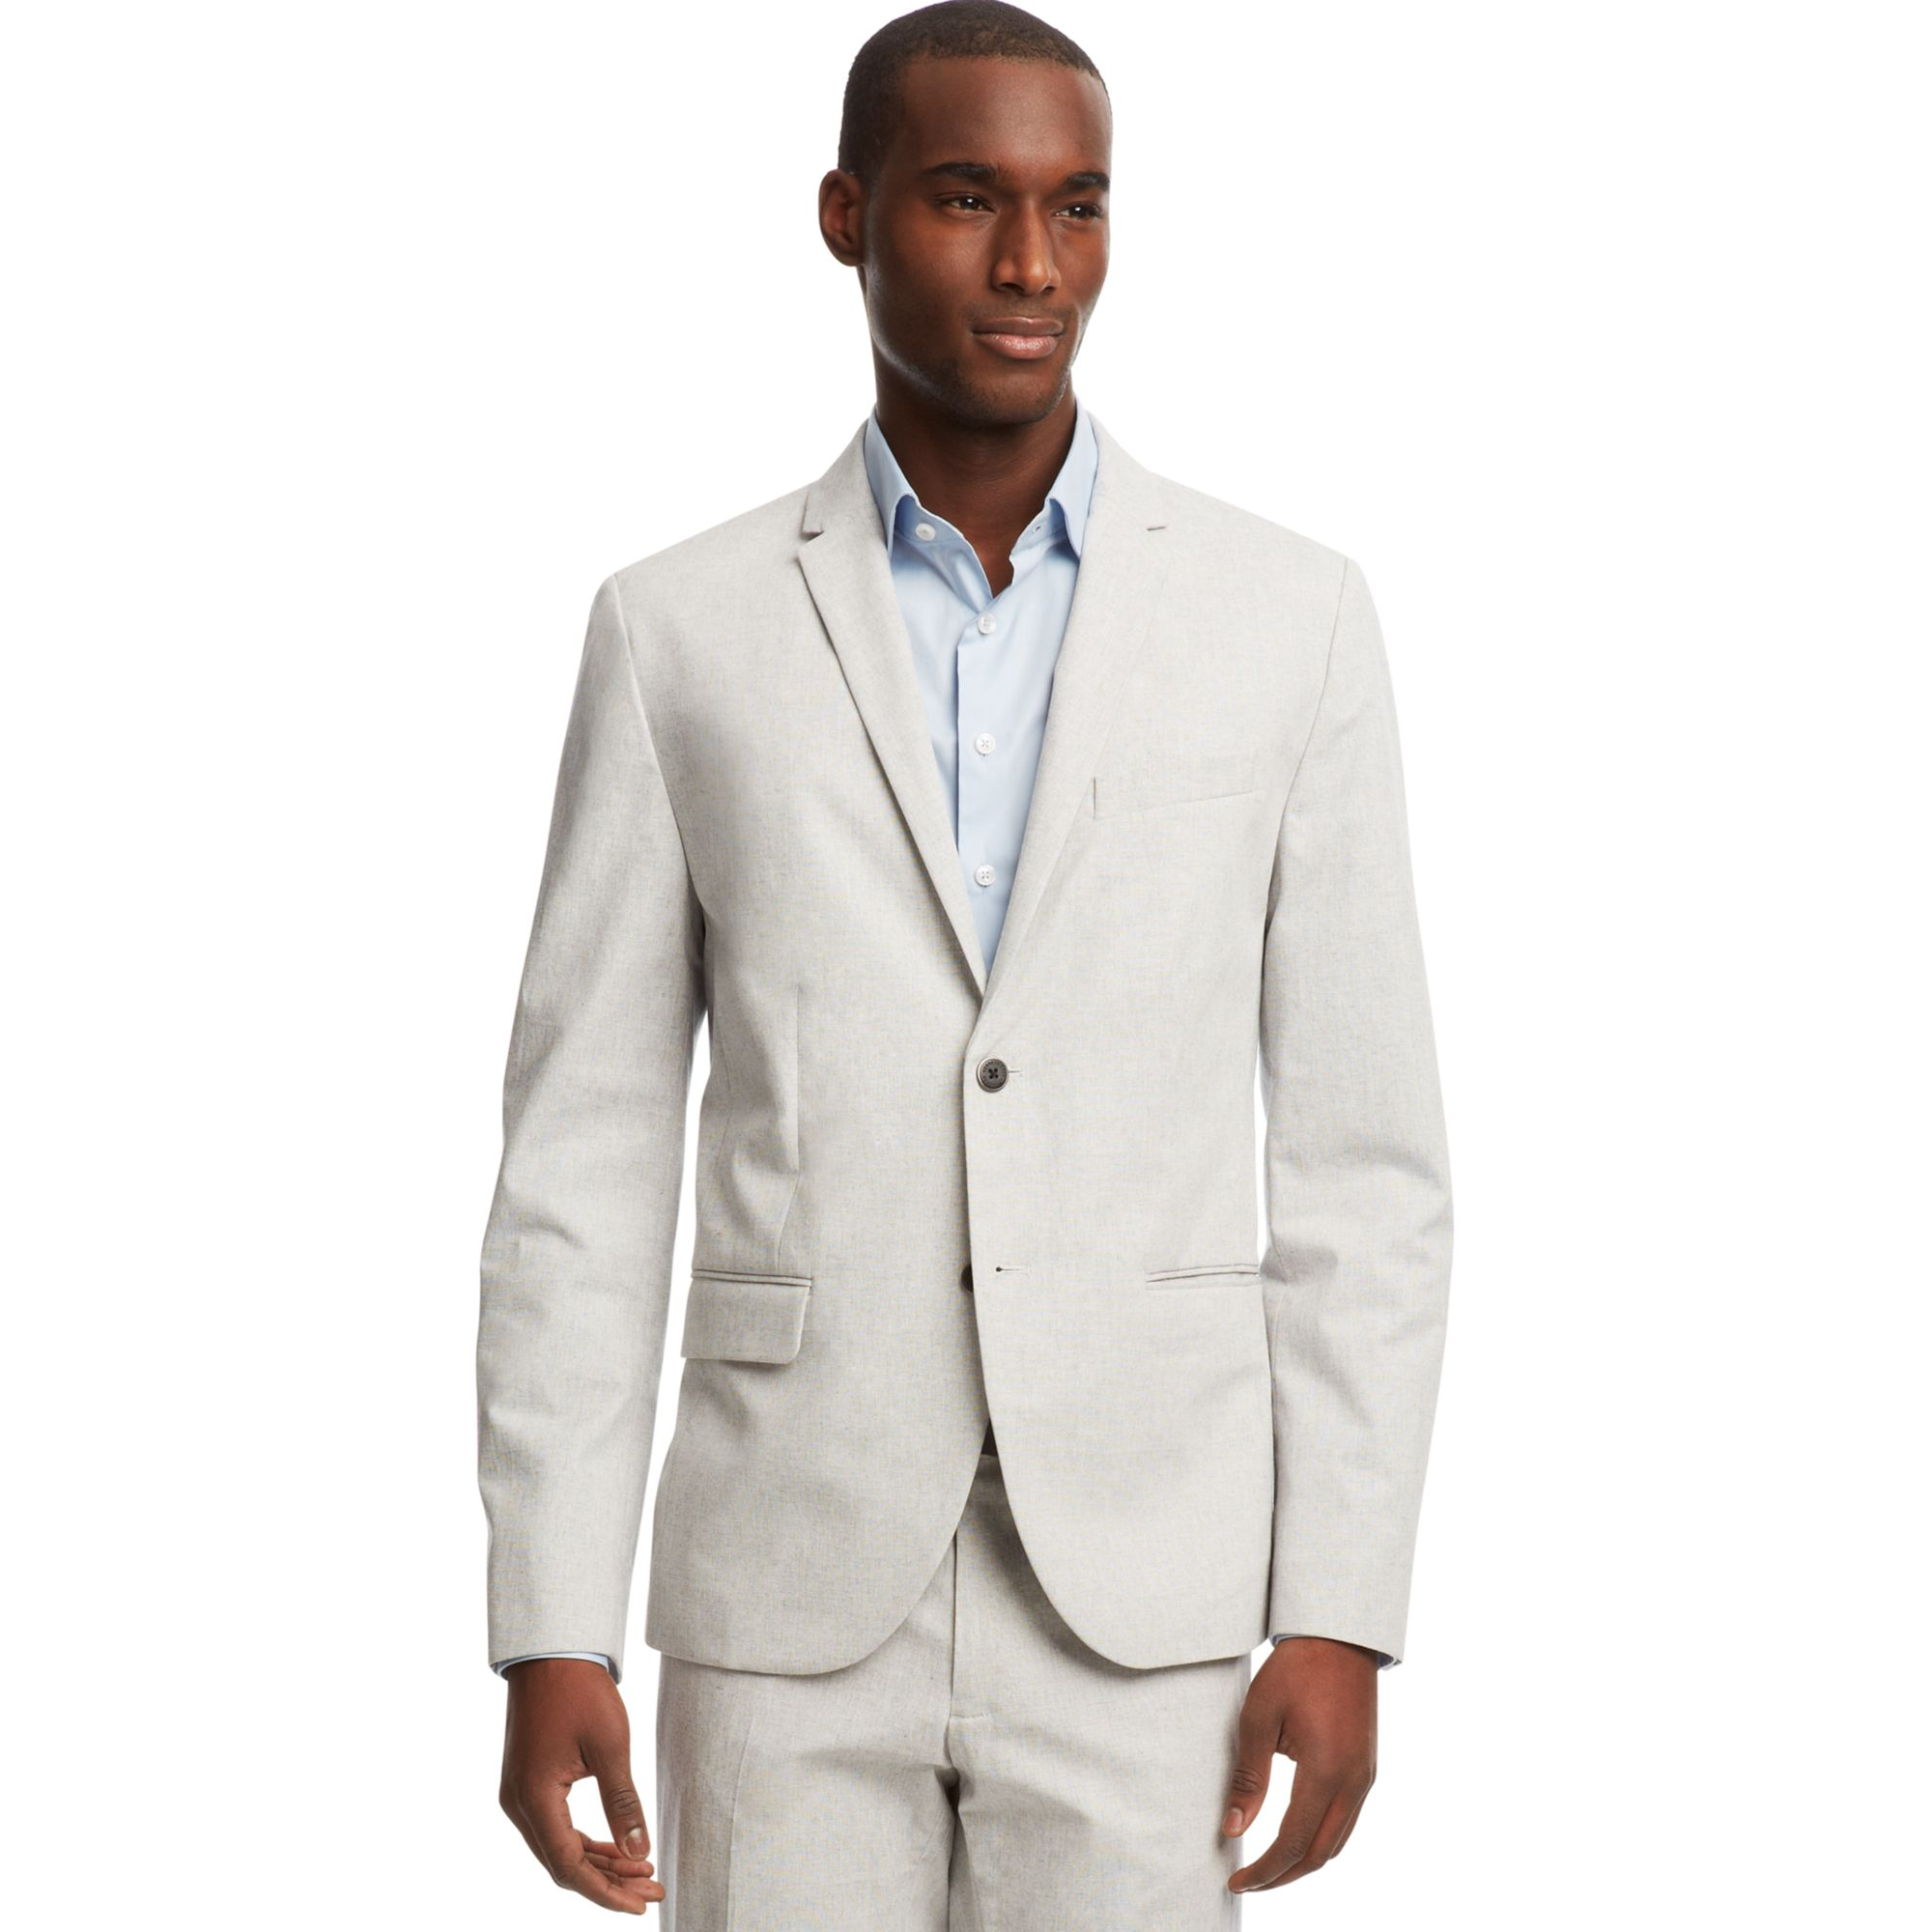 Kenneth Cole Reaction Superslim Fit Blazer In White For